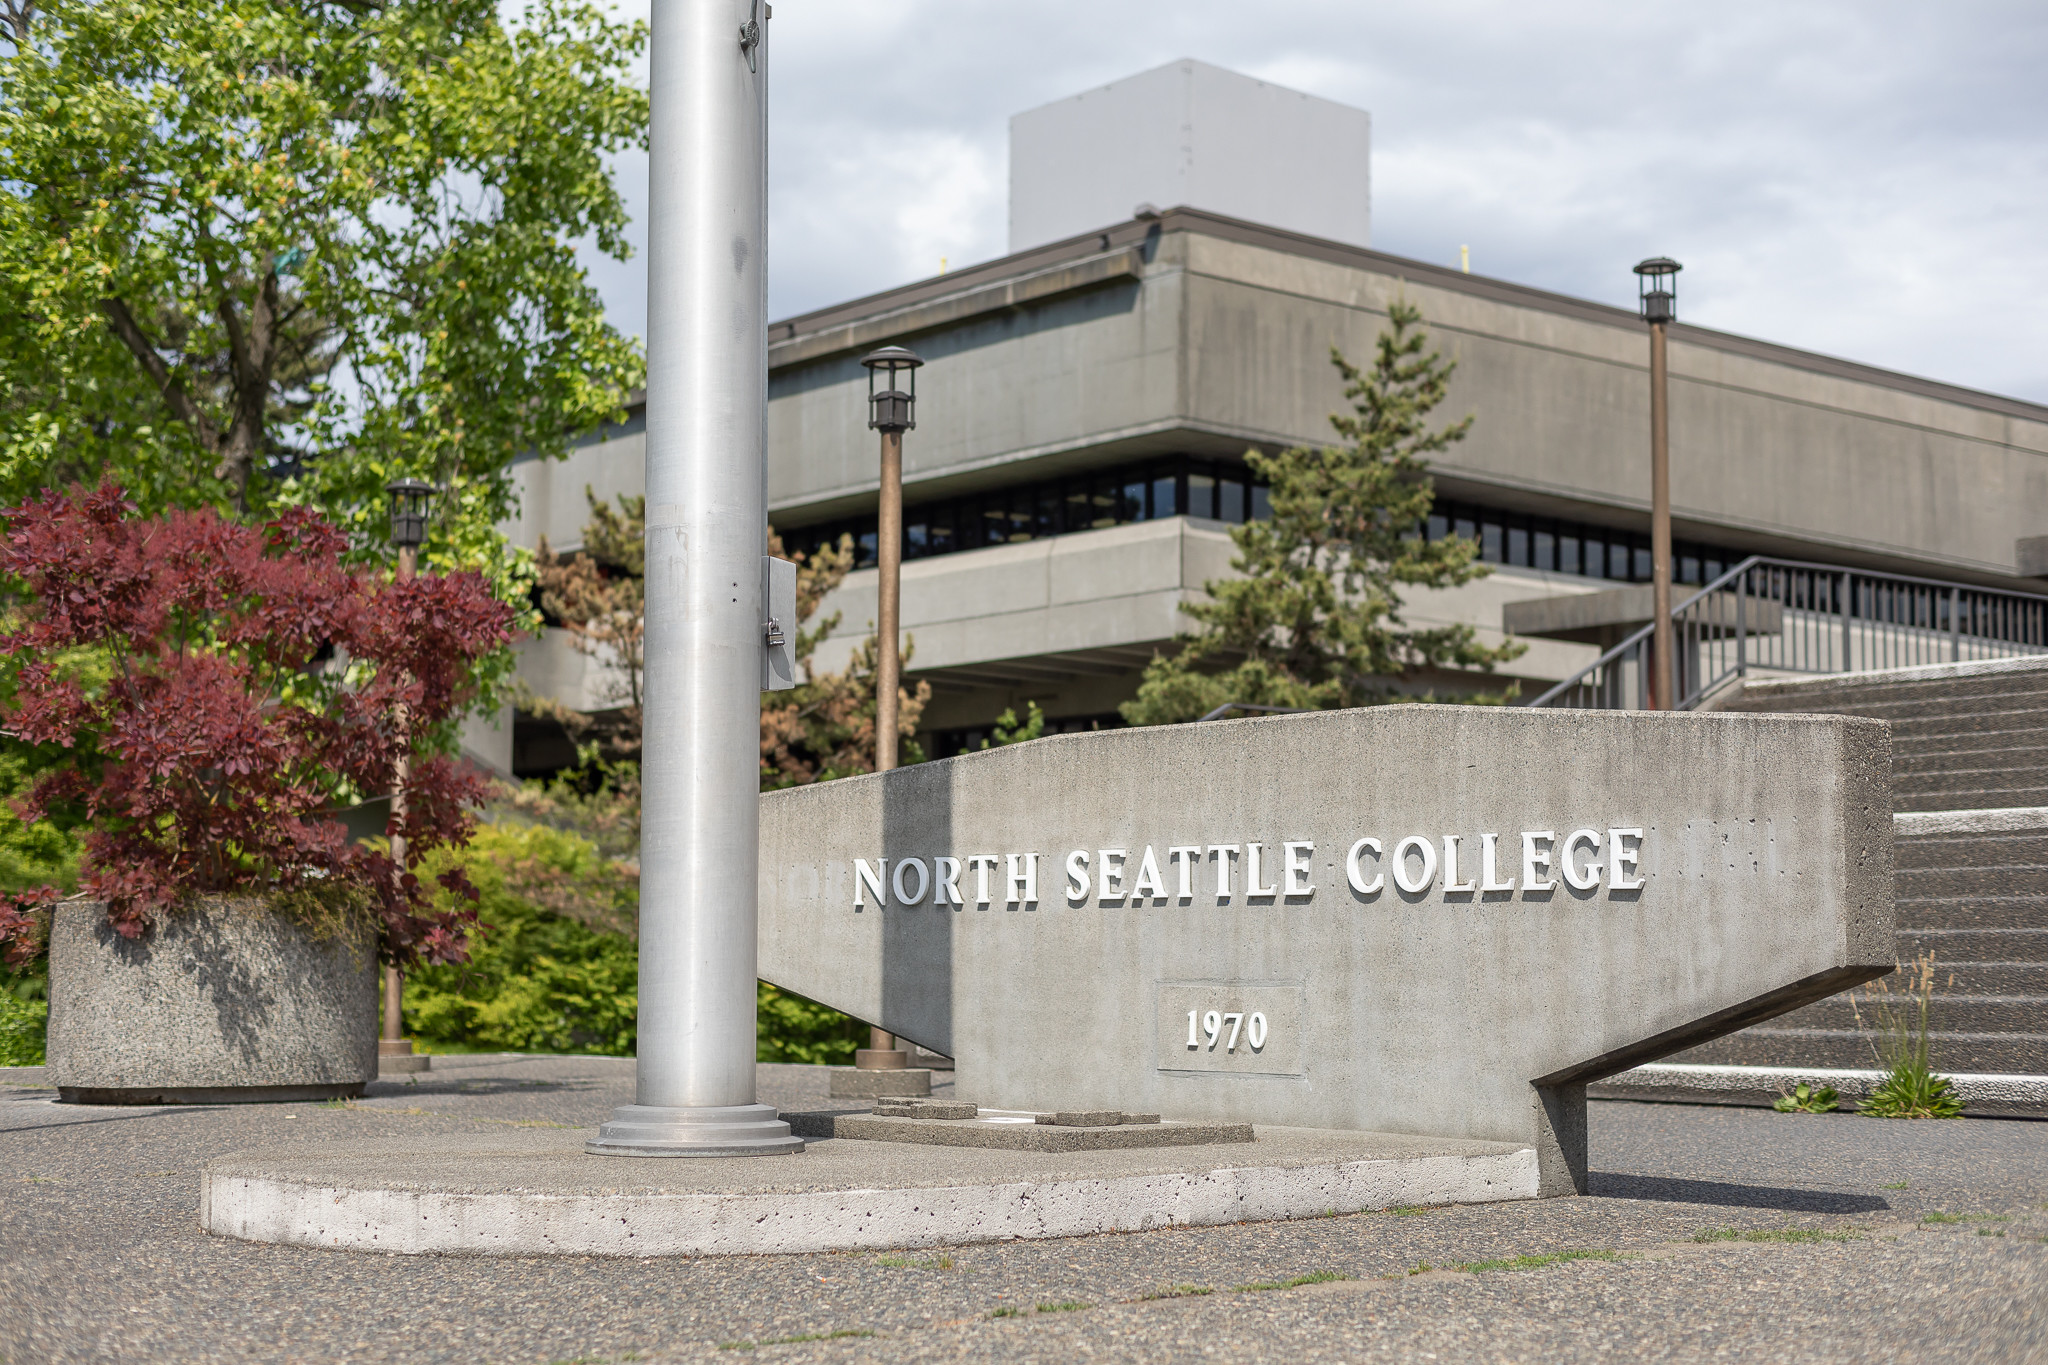 an image of the north seattle college